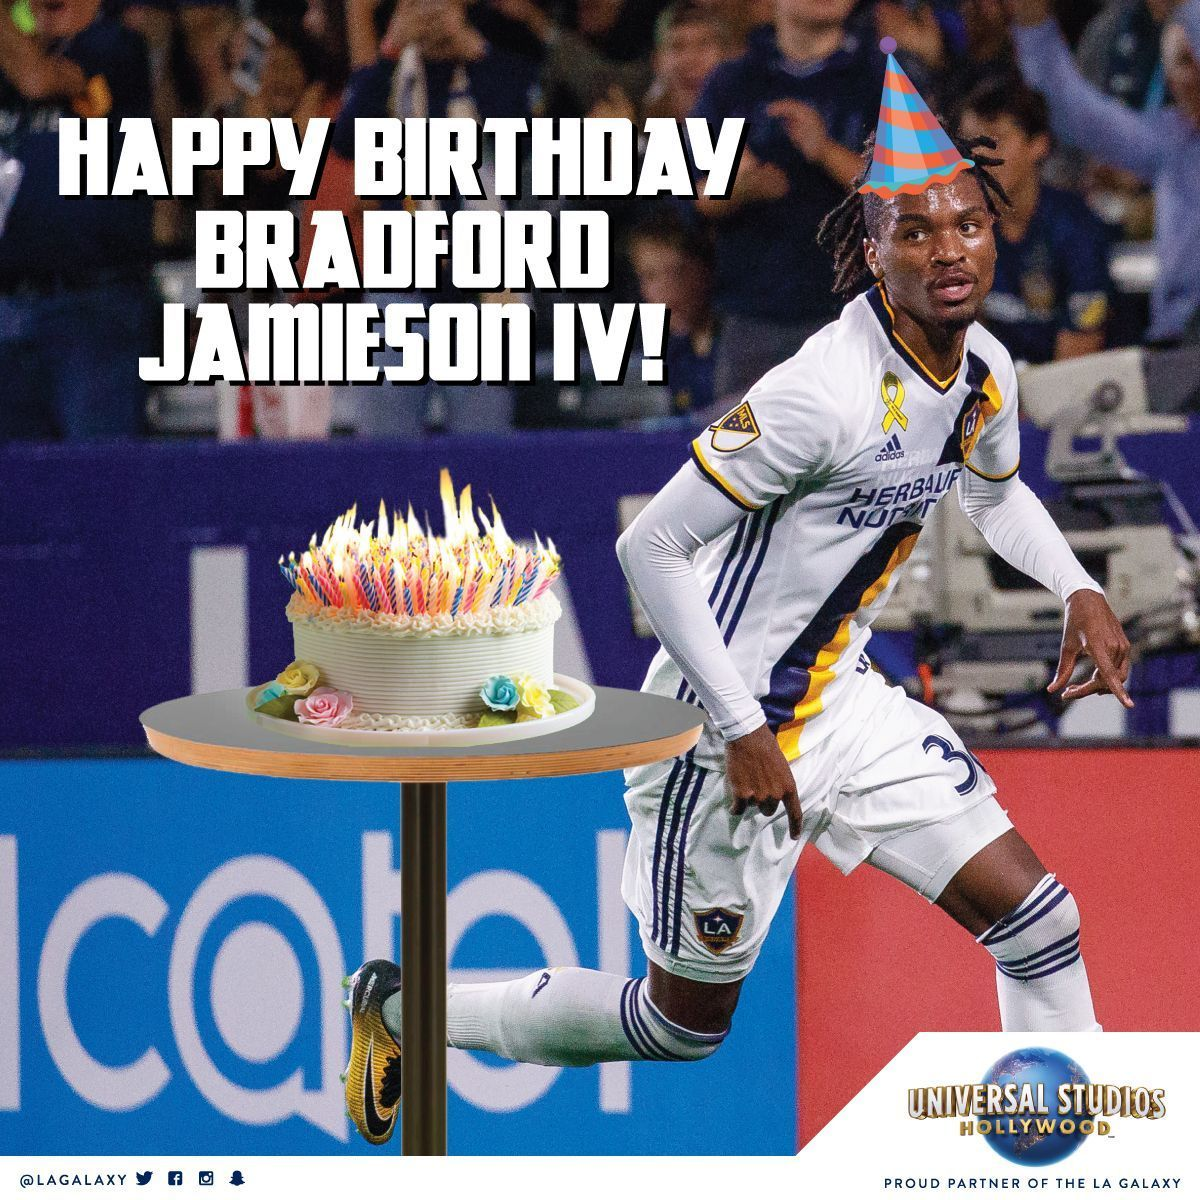 🎂 Happy Birthday to @brjIV from #LAGalaxy and @UniStudios! https://t.co/pQNBfCvFNl